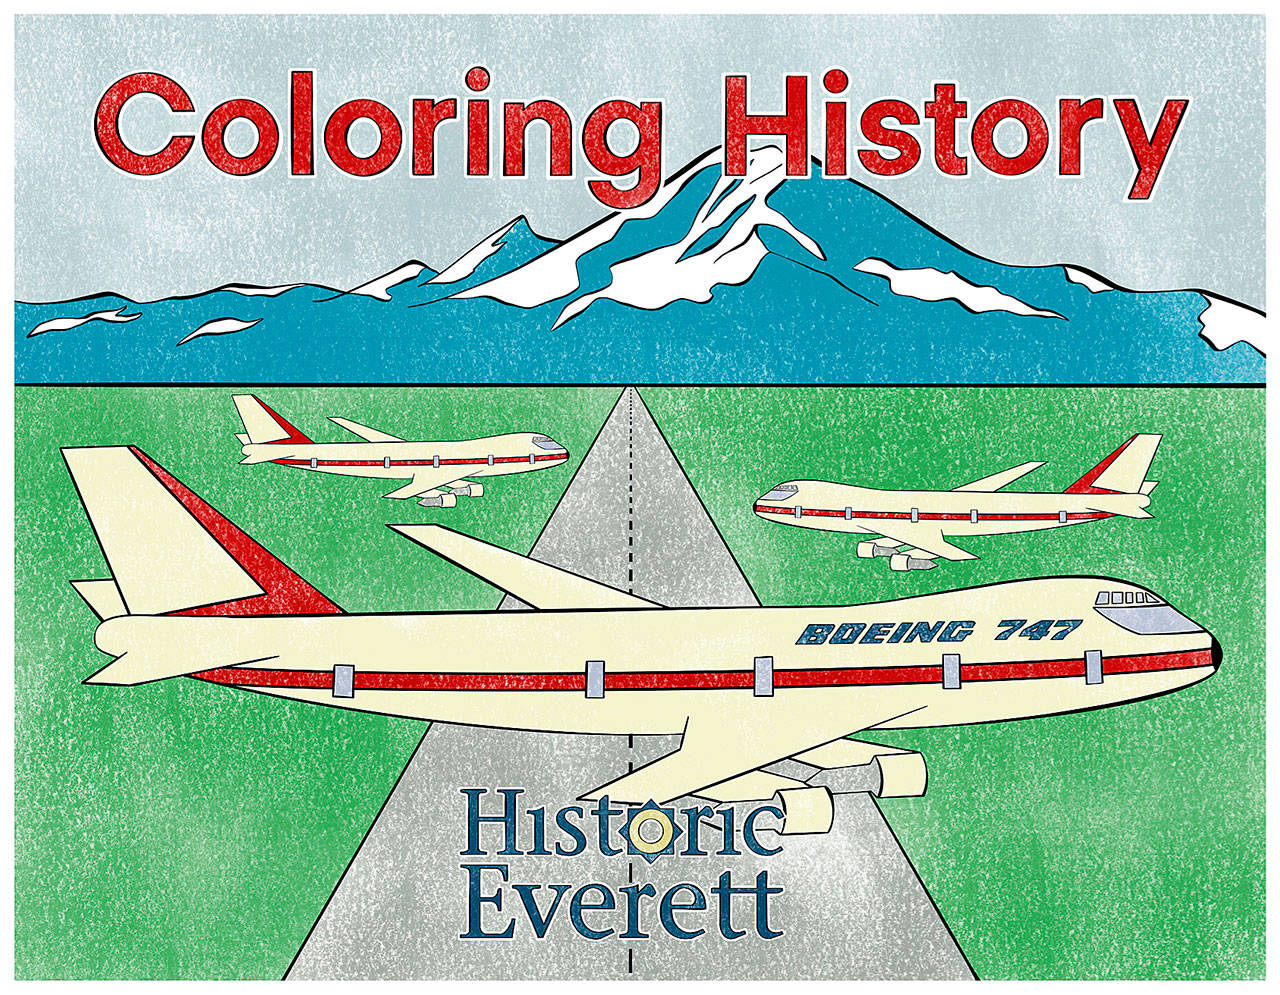 """Historic Everett is holding a coloring contest featuring pages from its """"Coloring History"""" coloring book. The deadline to enter is Sept. 15. (Historic Everett)"""